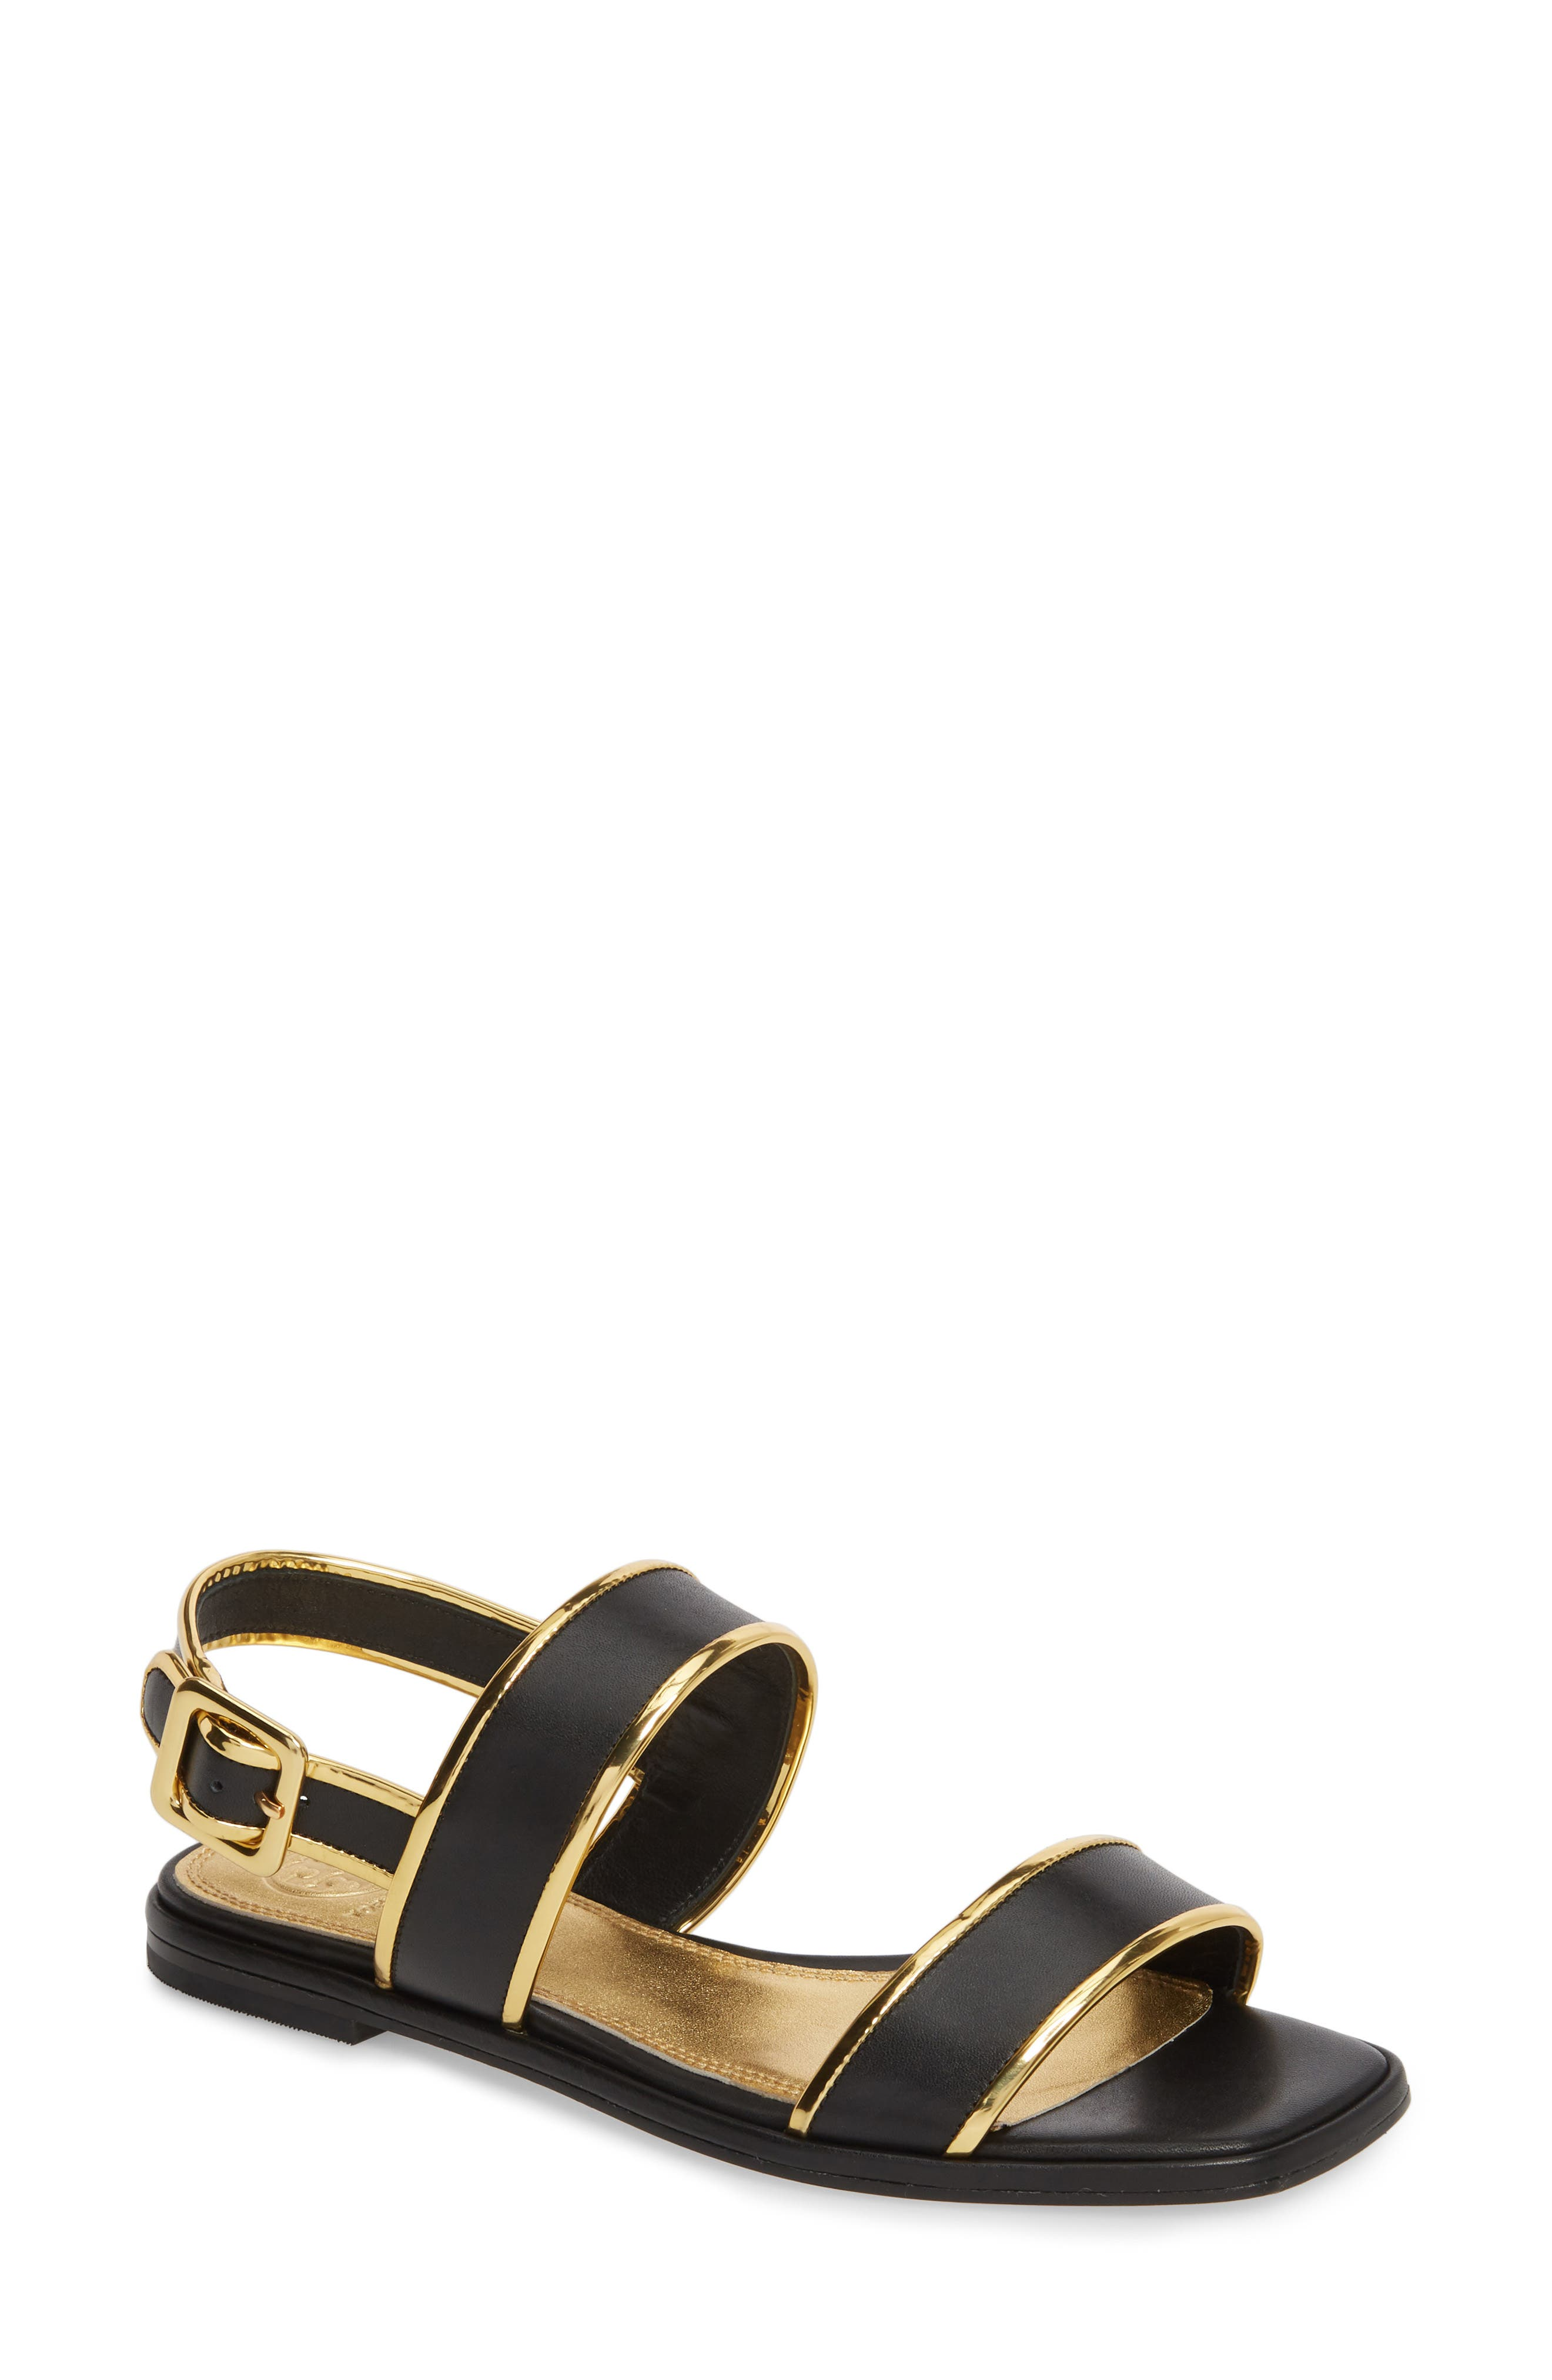 Delaney Double Strap Sandal,                             Main thumbnail 1, color,